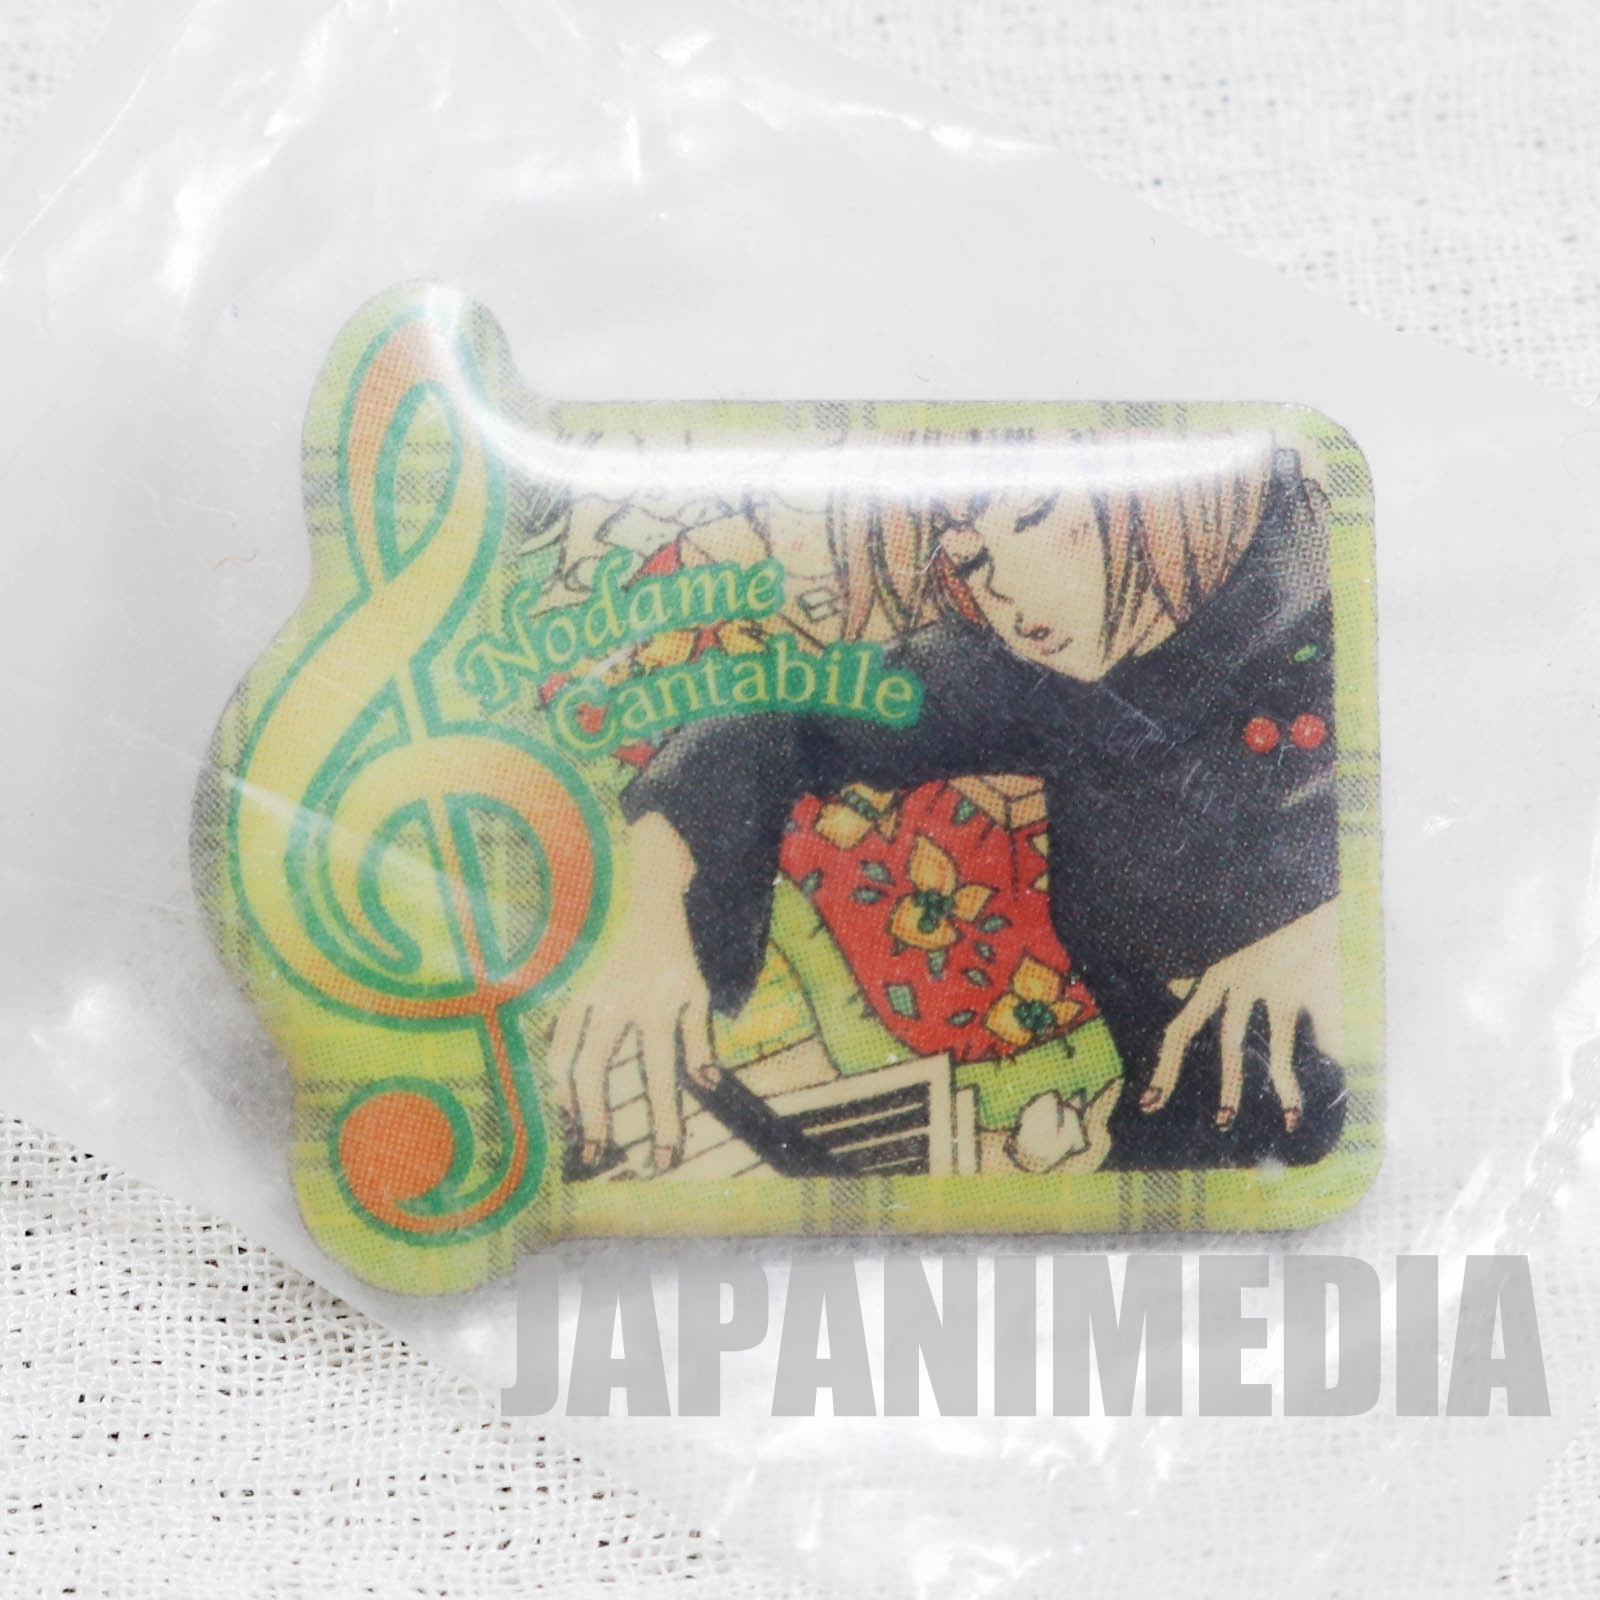 Nodame Cantabile Megumi Noda Gashapon Pins Collection JAPAN ANIME